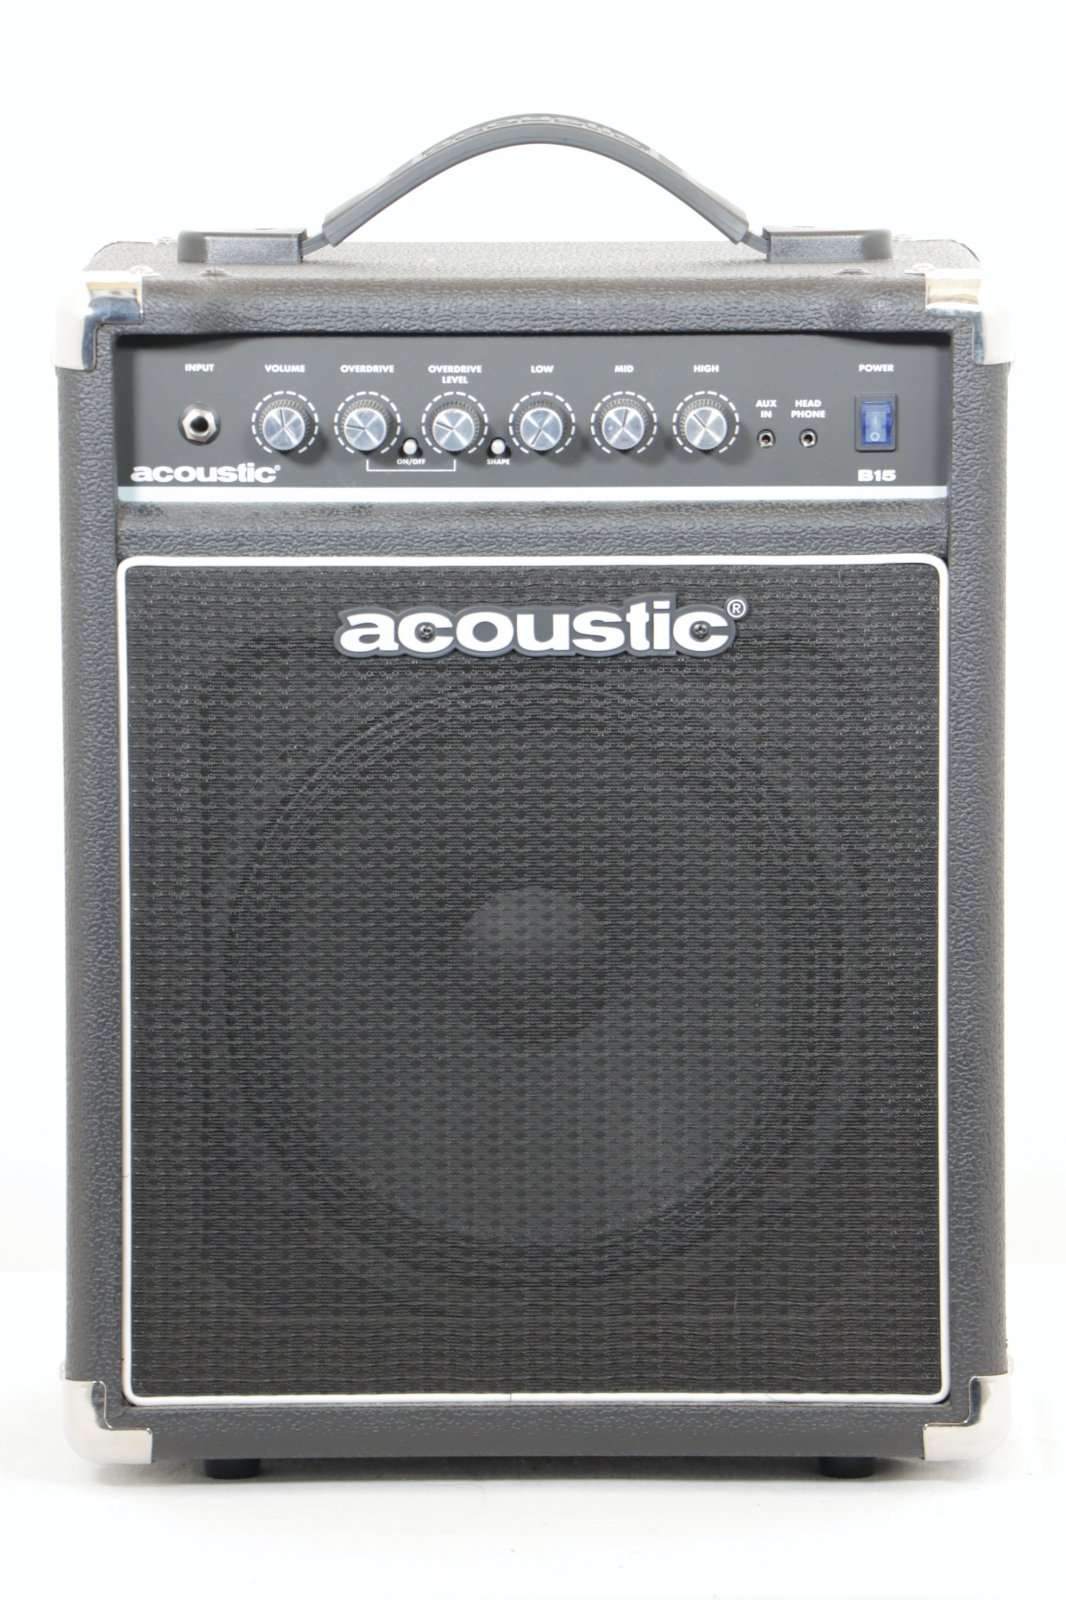 USED Acoustic B15 15w Bass Amplifier - MINT CONDITION